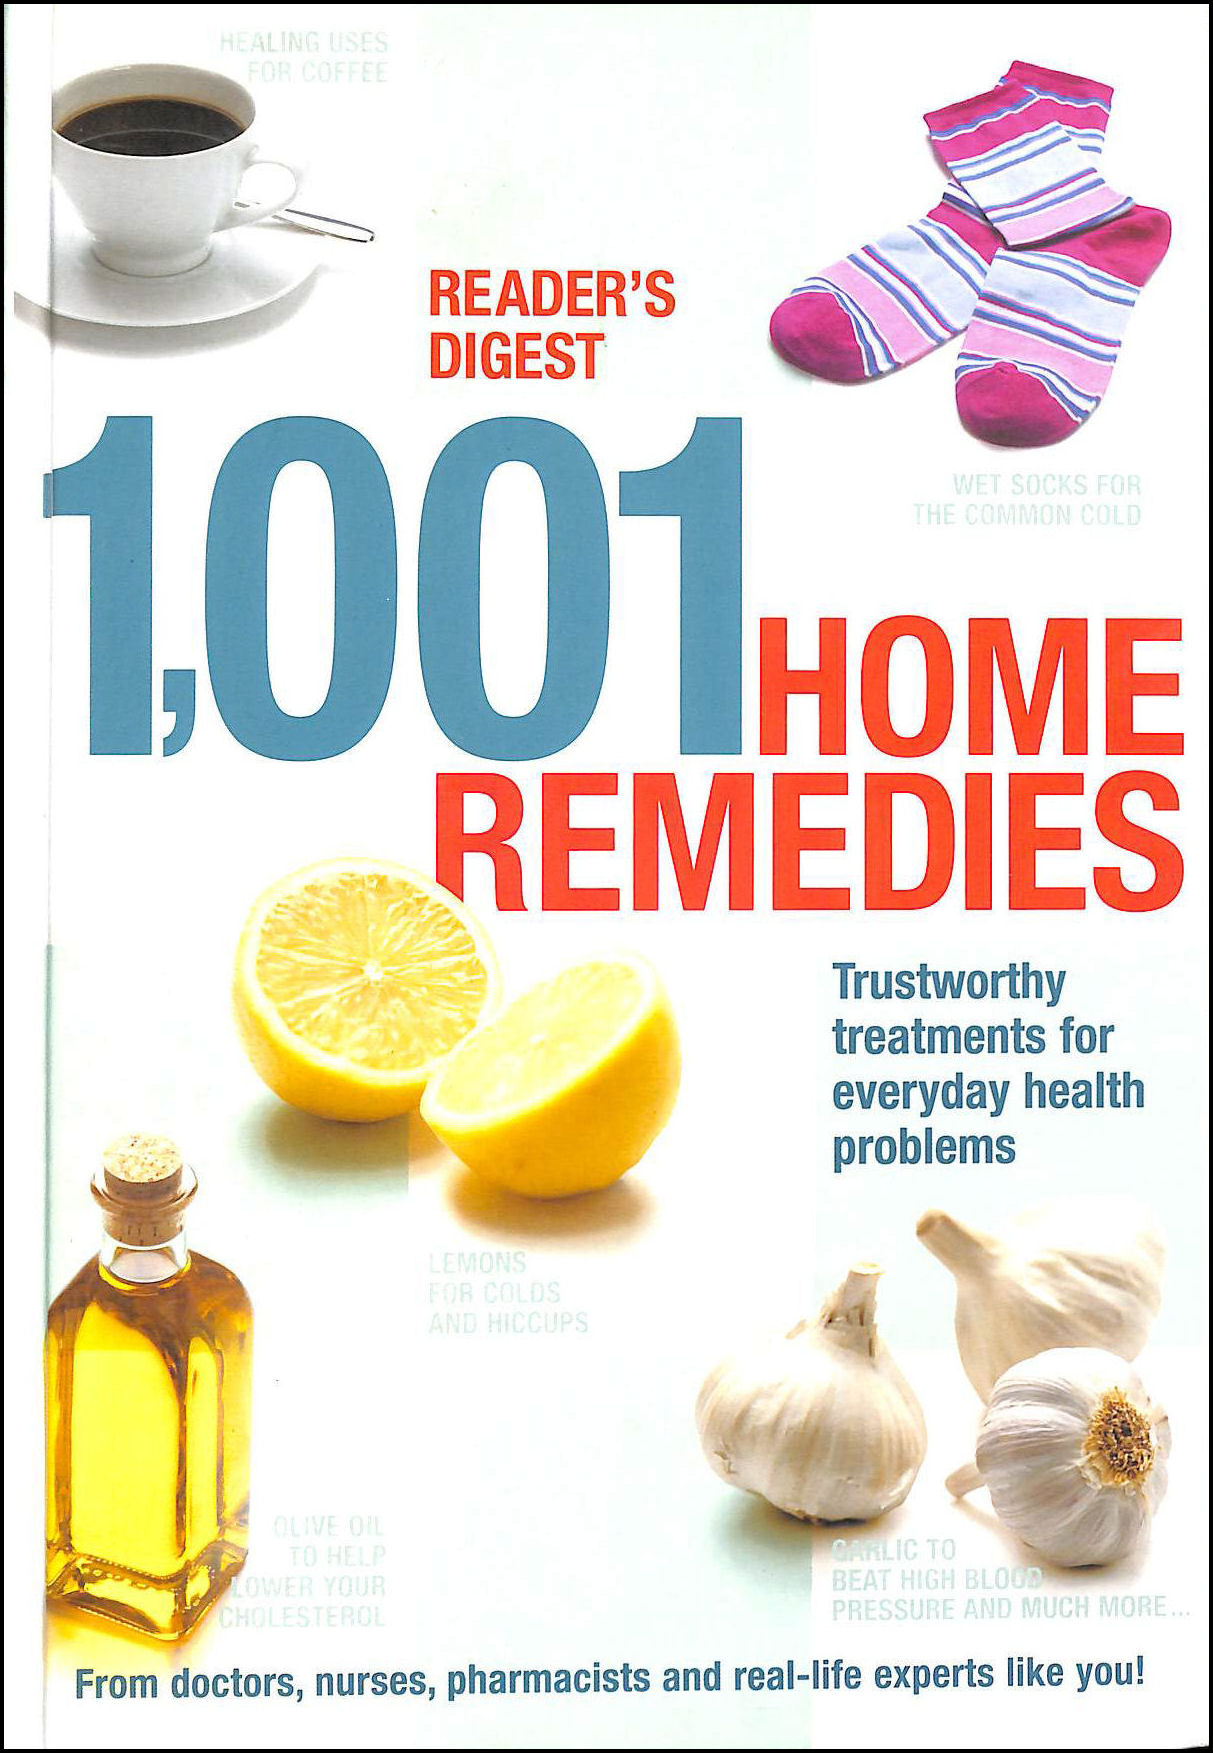 1001 Home Remedies: Trustworthy Treatments for Everyday Health Problems, Reader's Digest